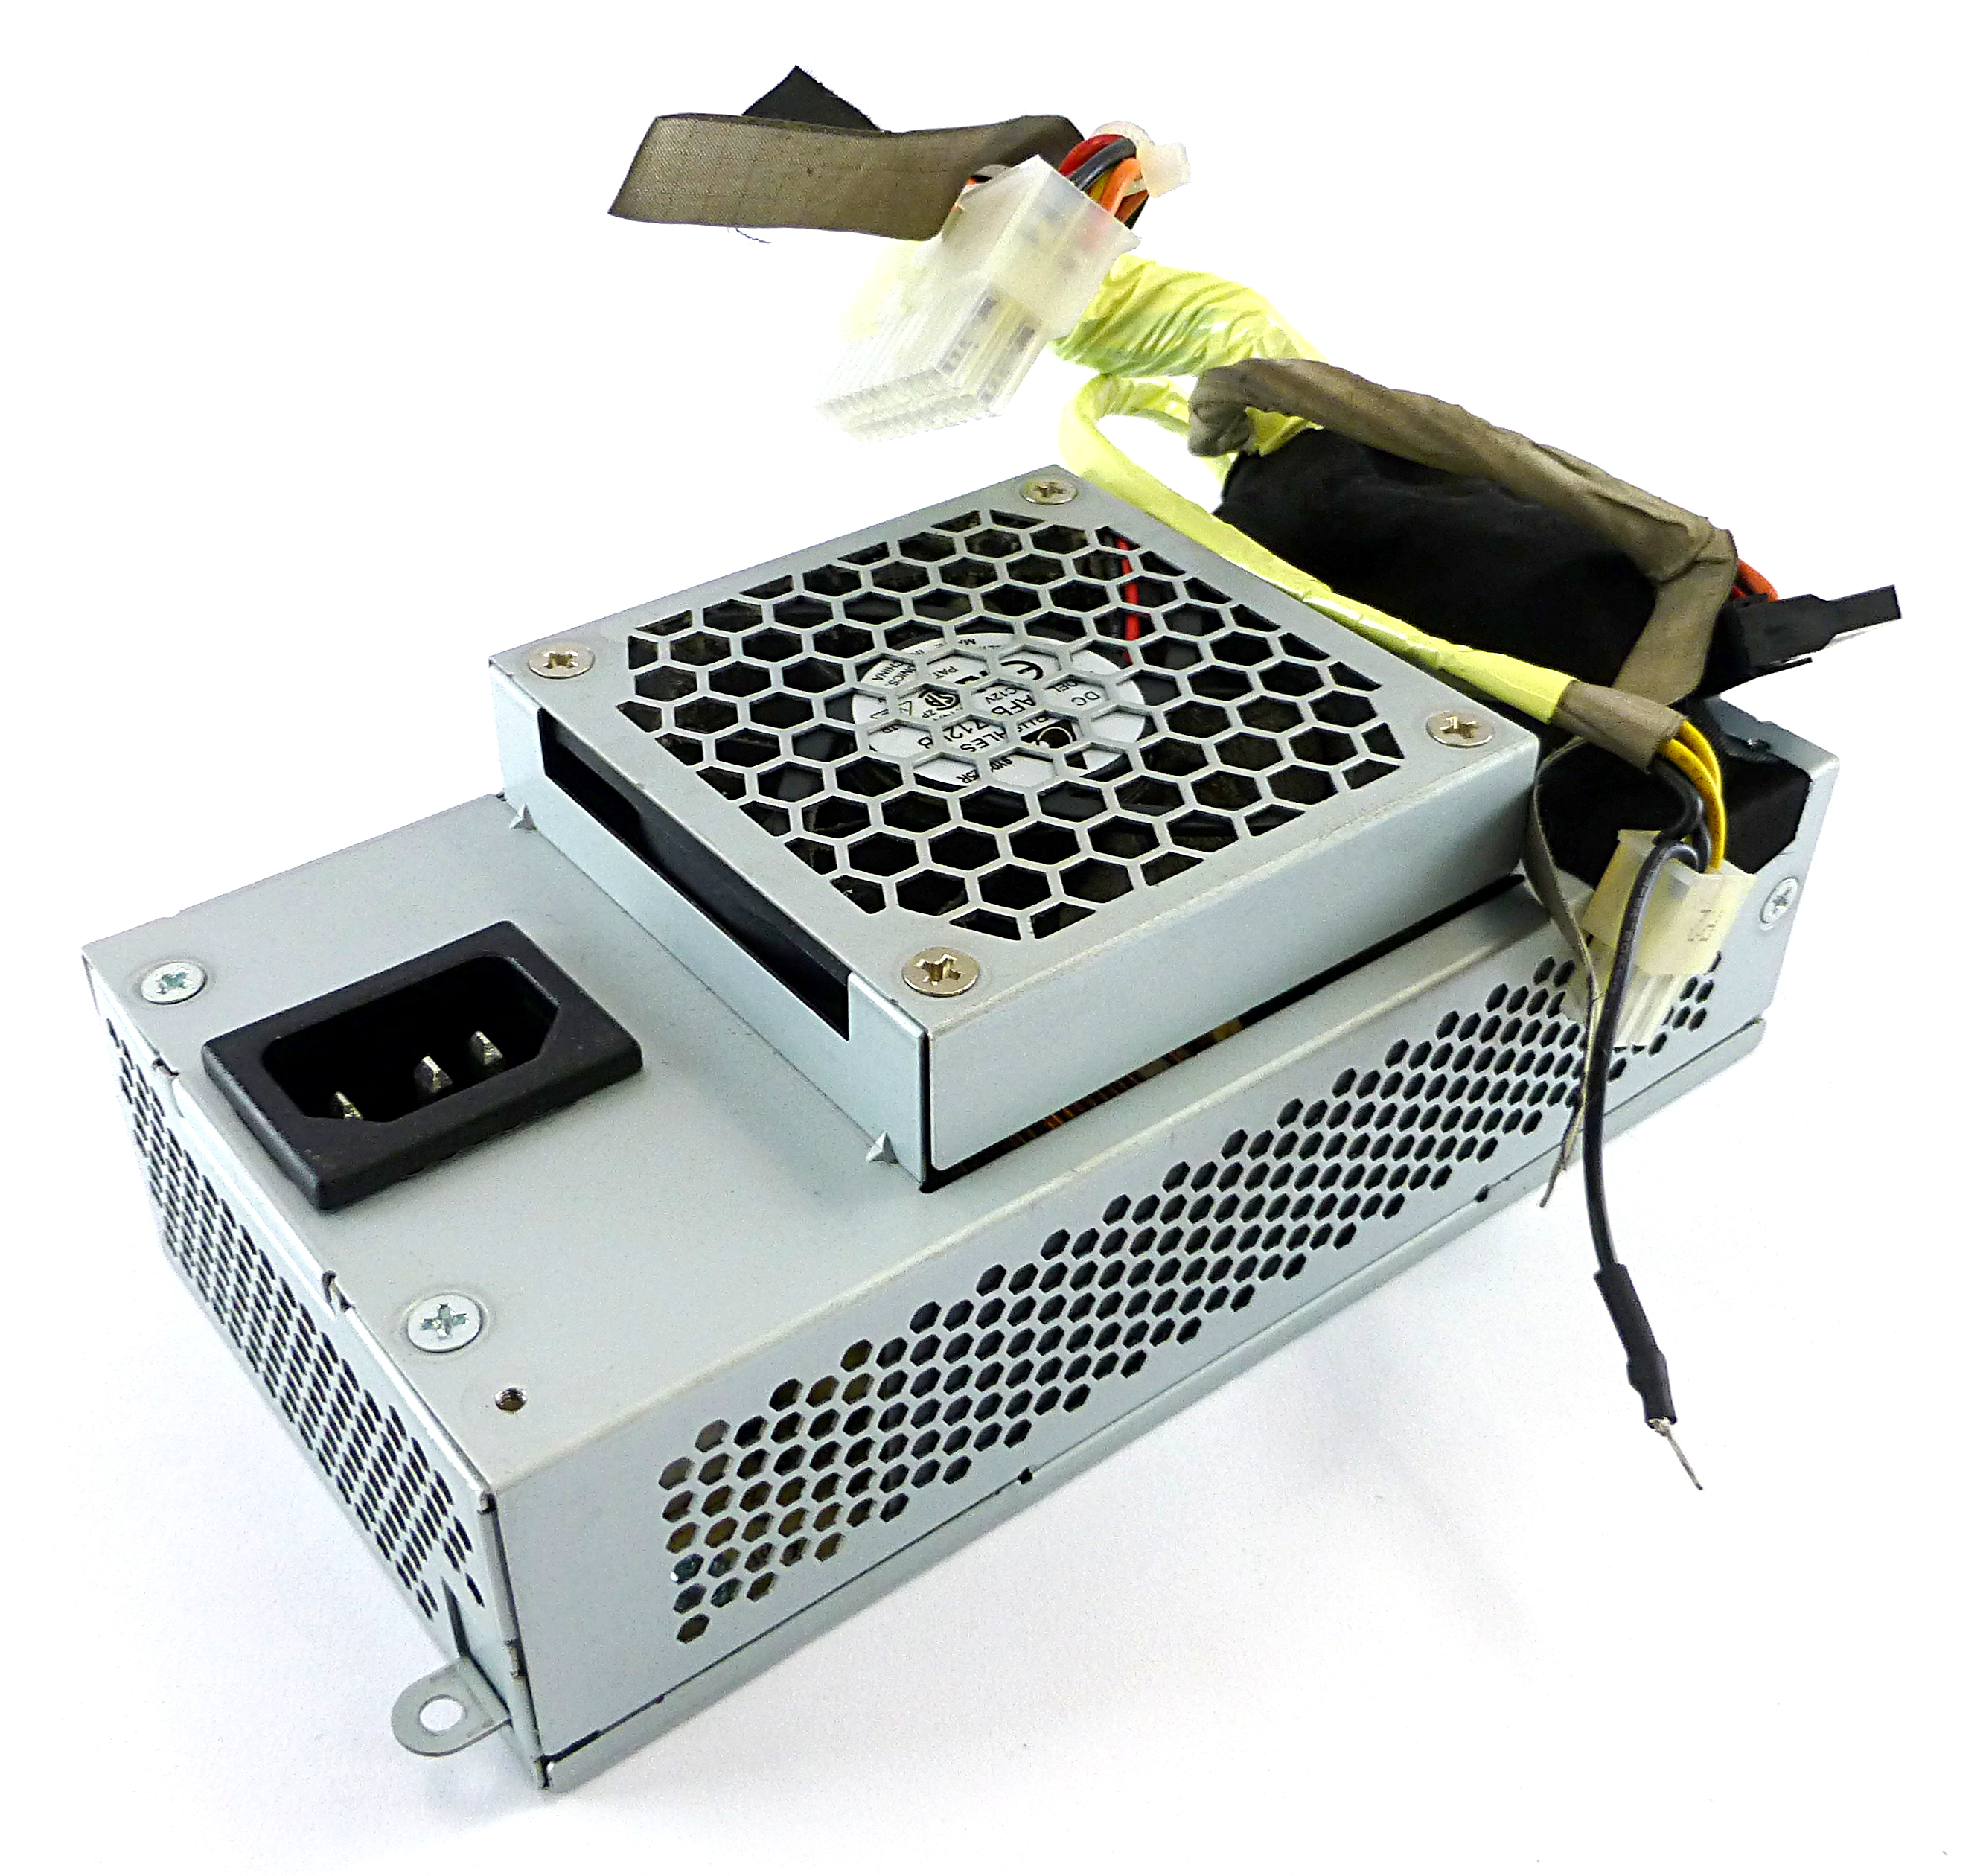 DPS-250AB-53 A Delta Electronics 250W Power Supply